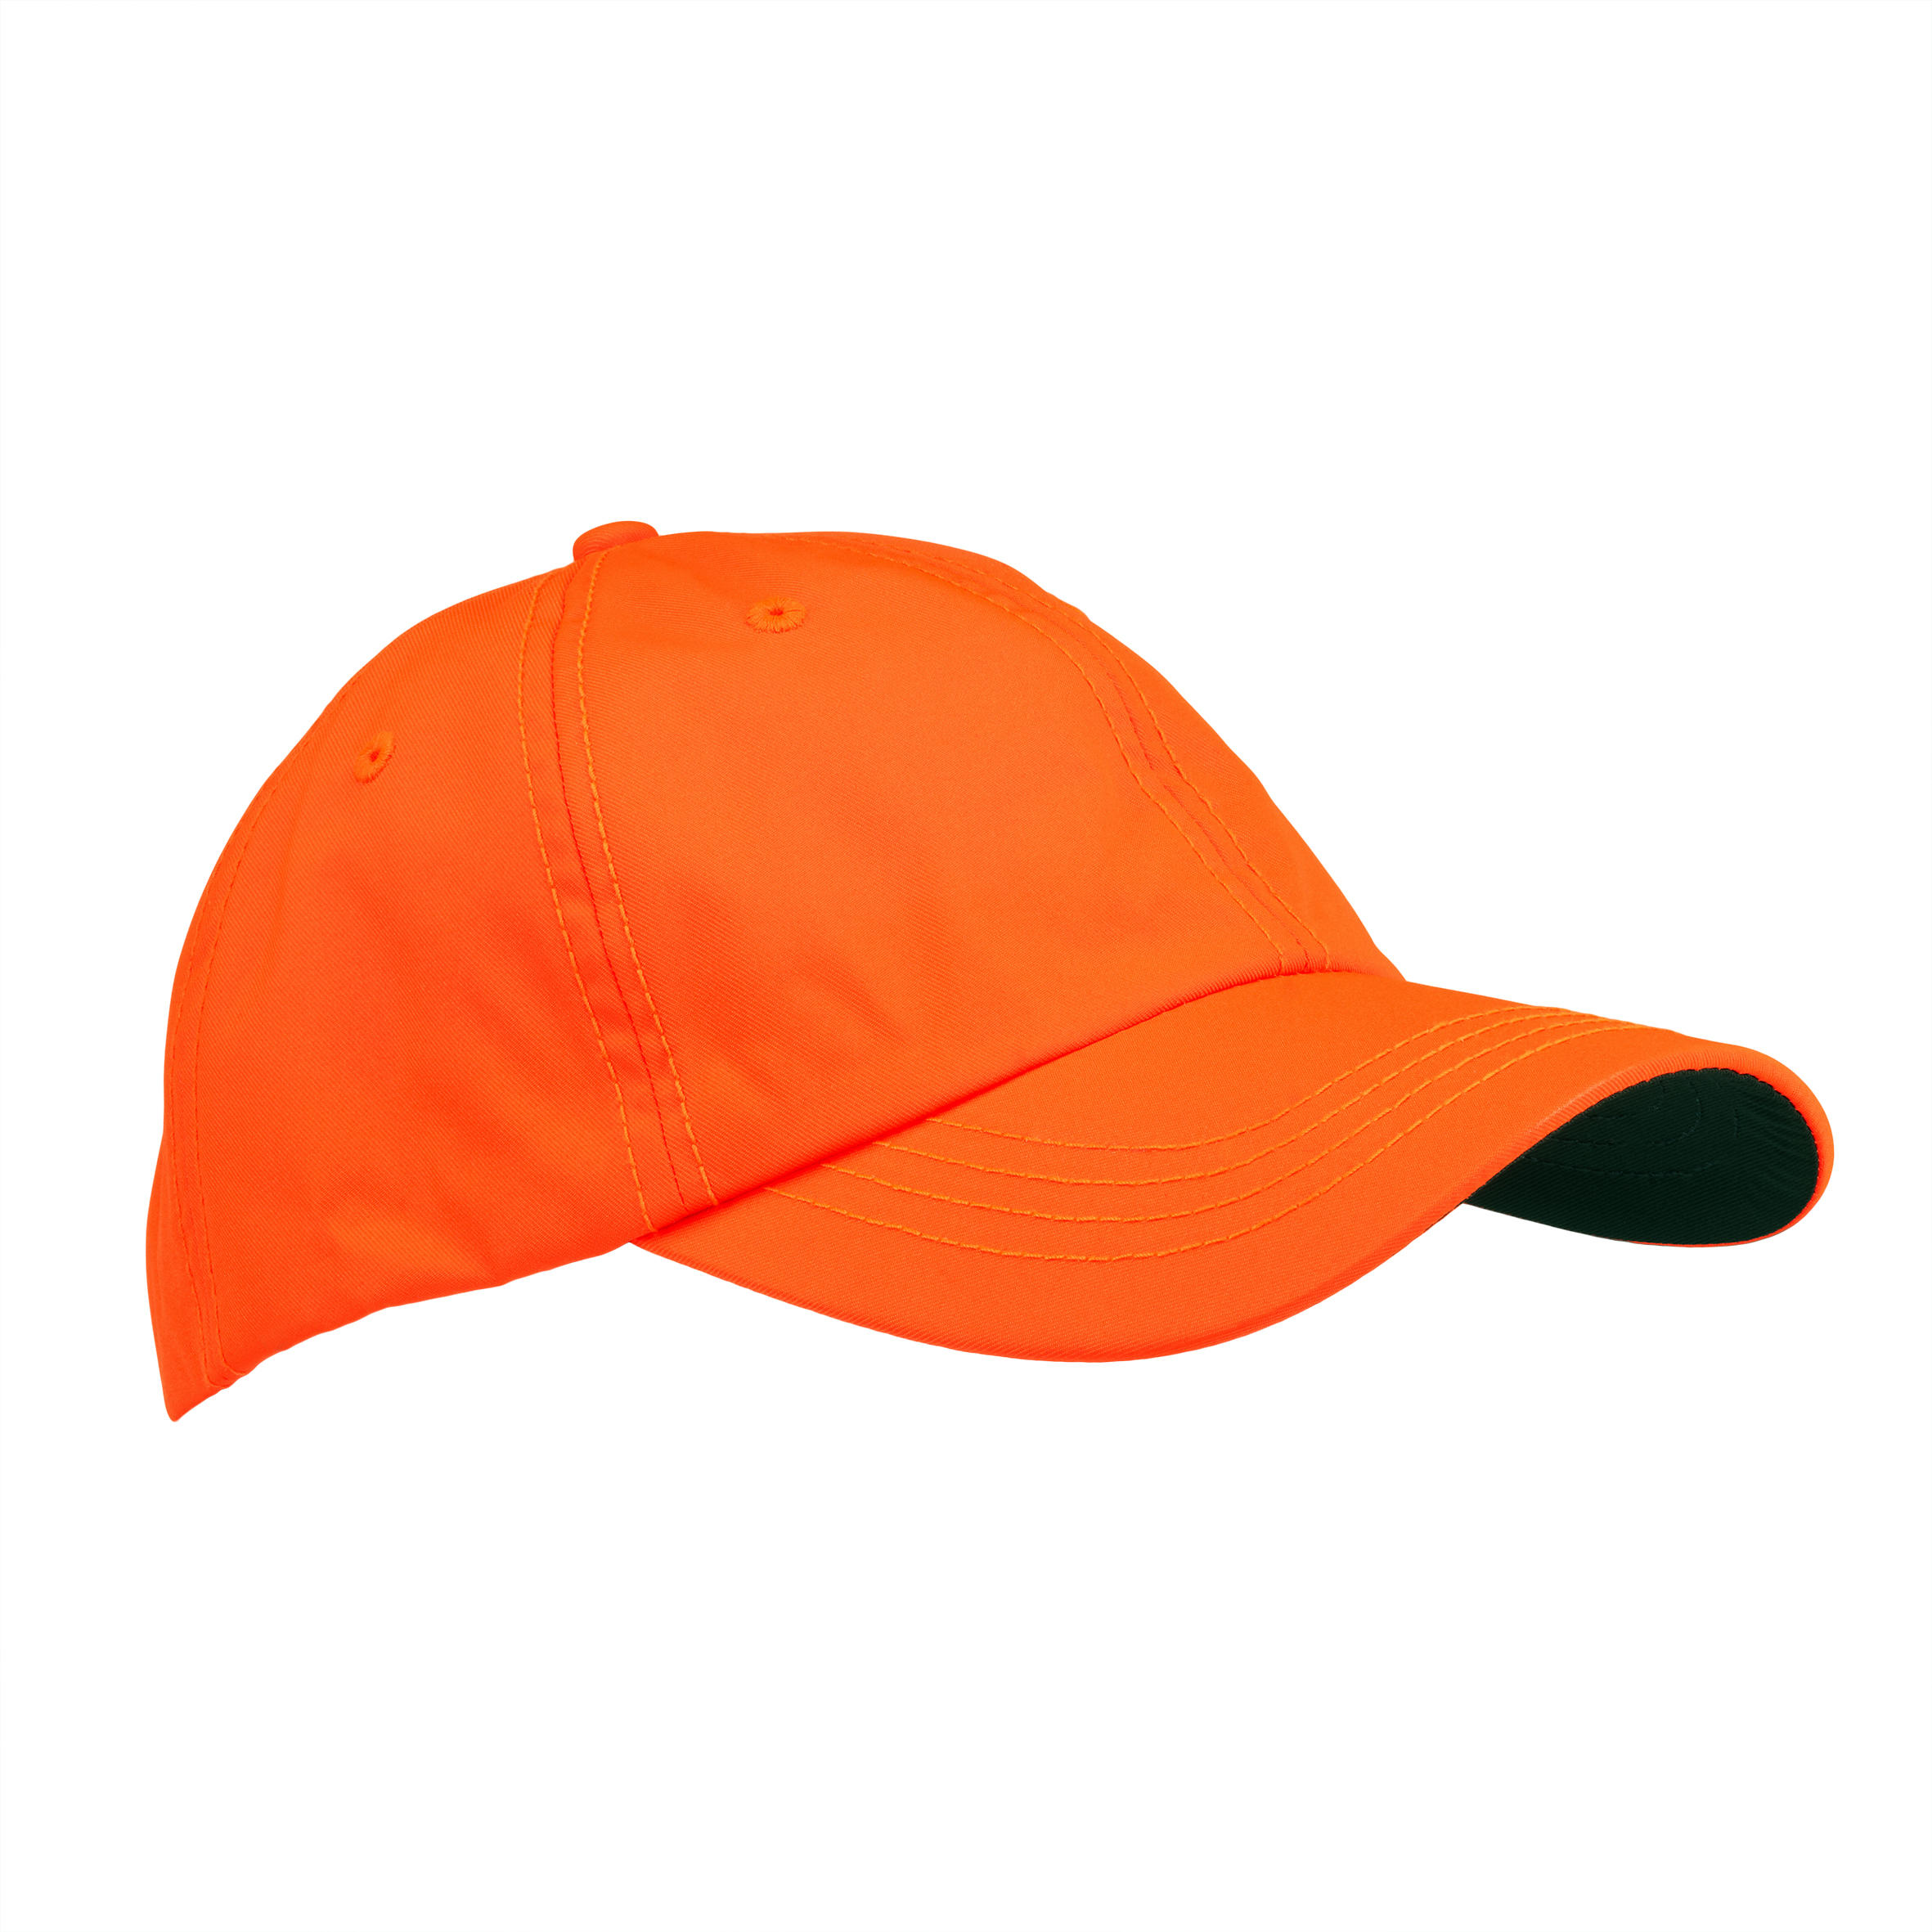 100 HUNTING CAP ORANGE